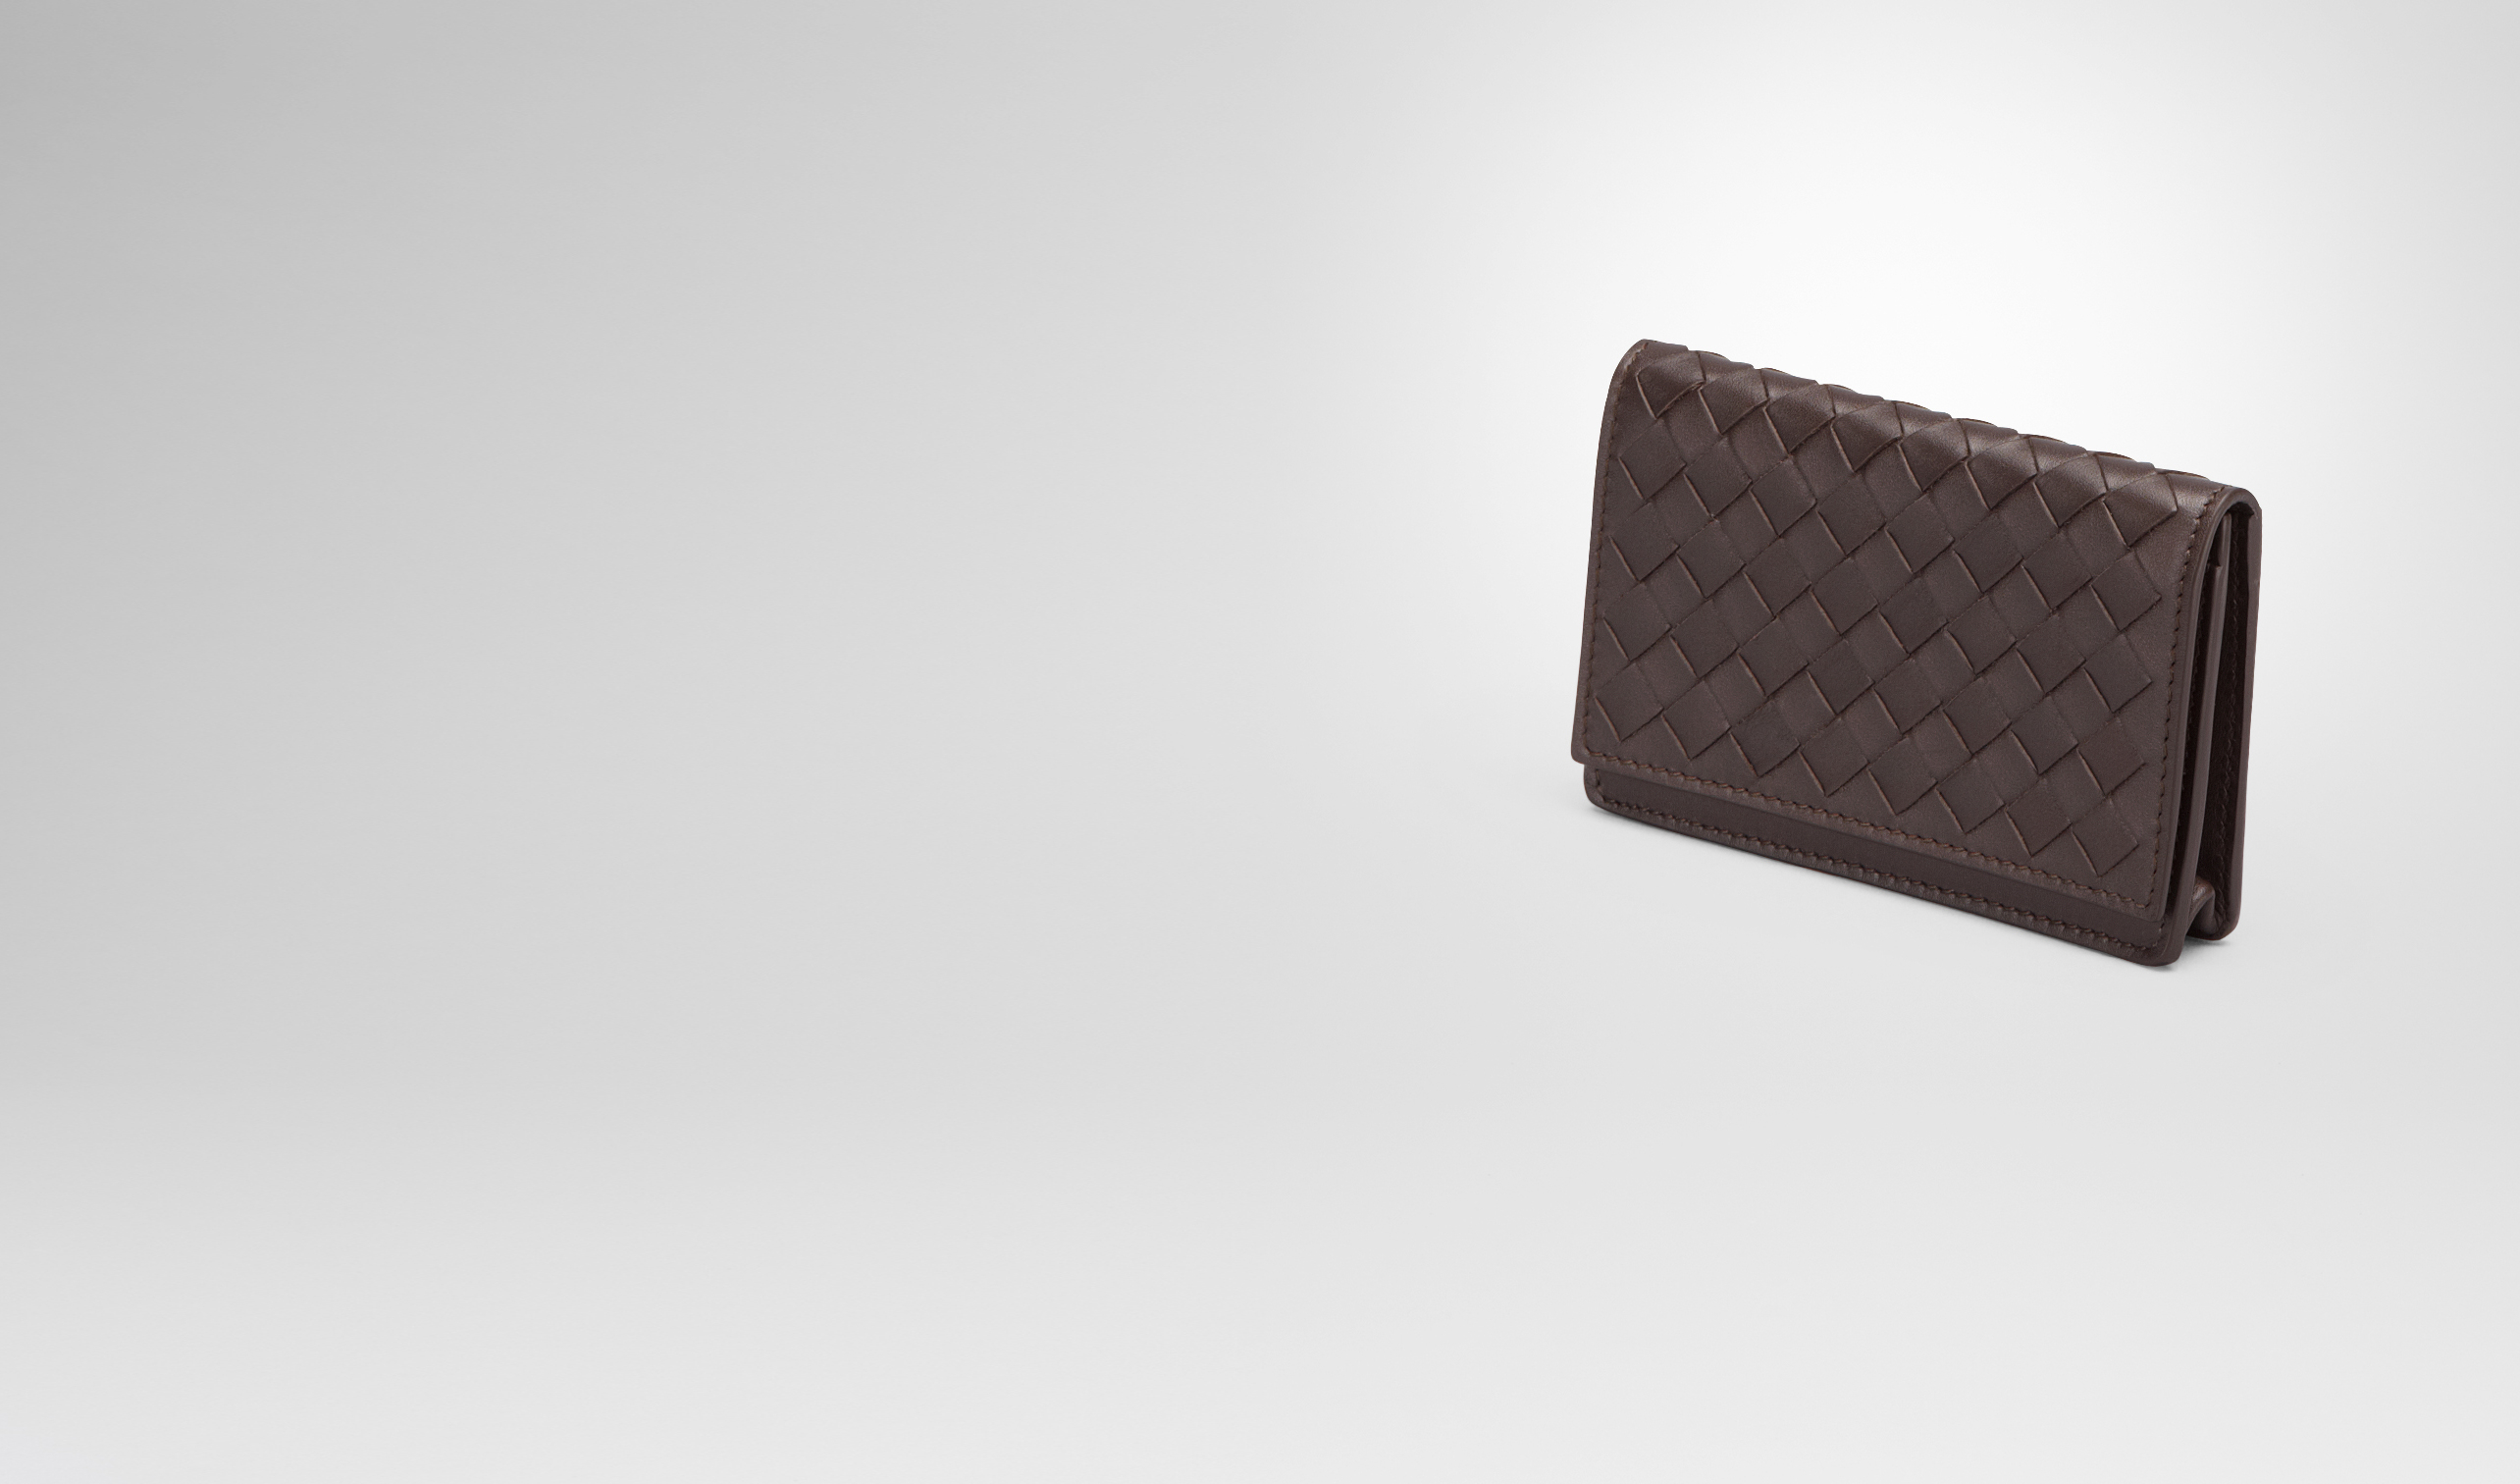 Bottega Veneta Ebano Intrecciato Vn Business Card Case